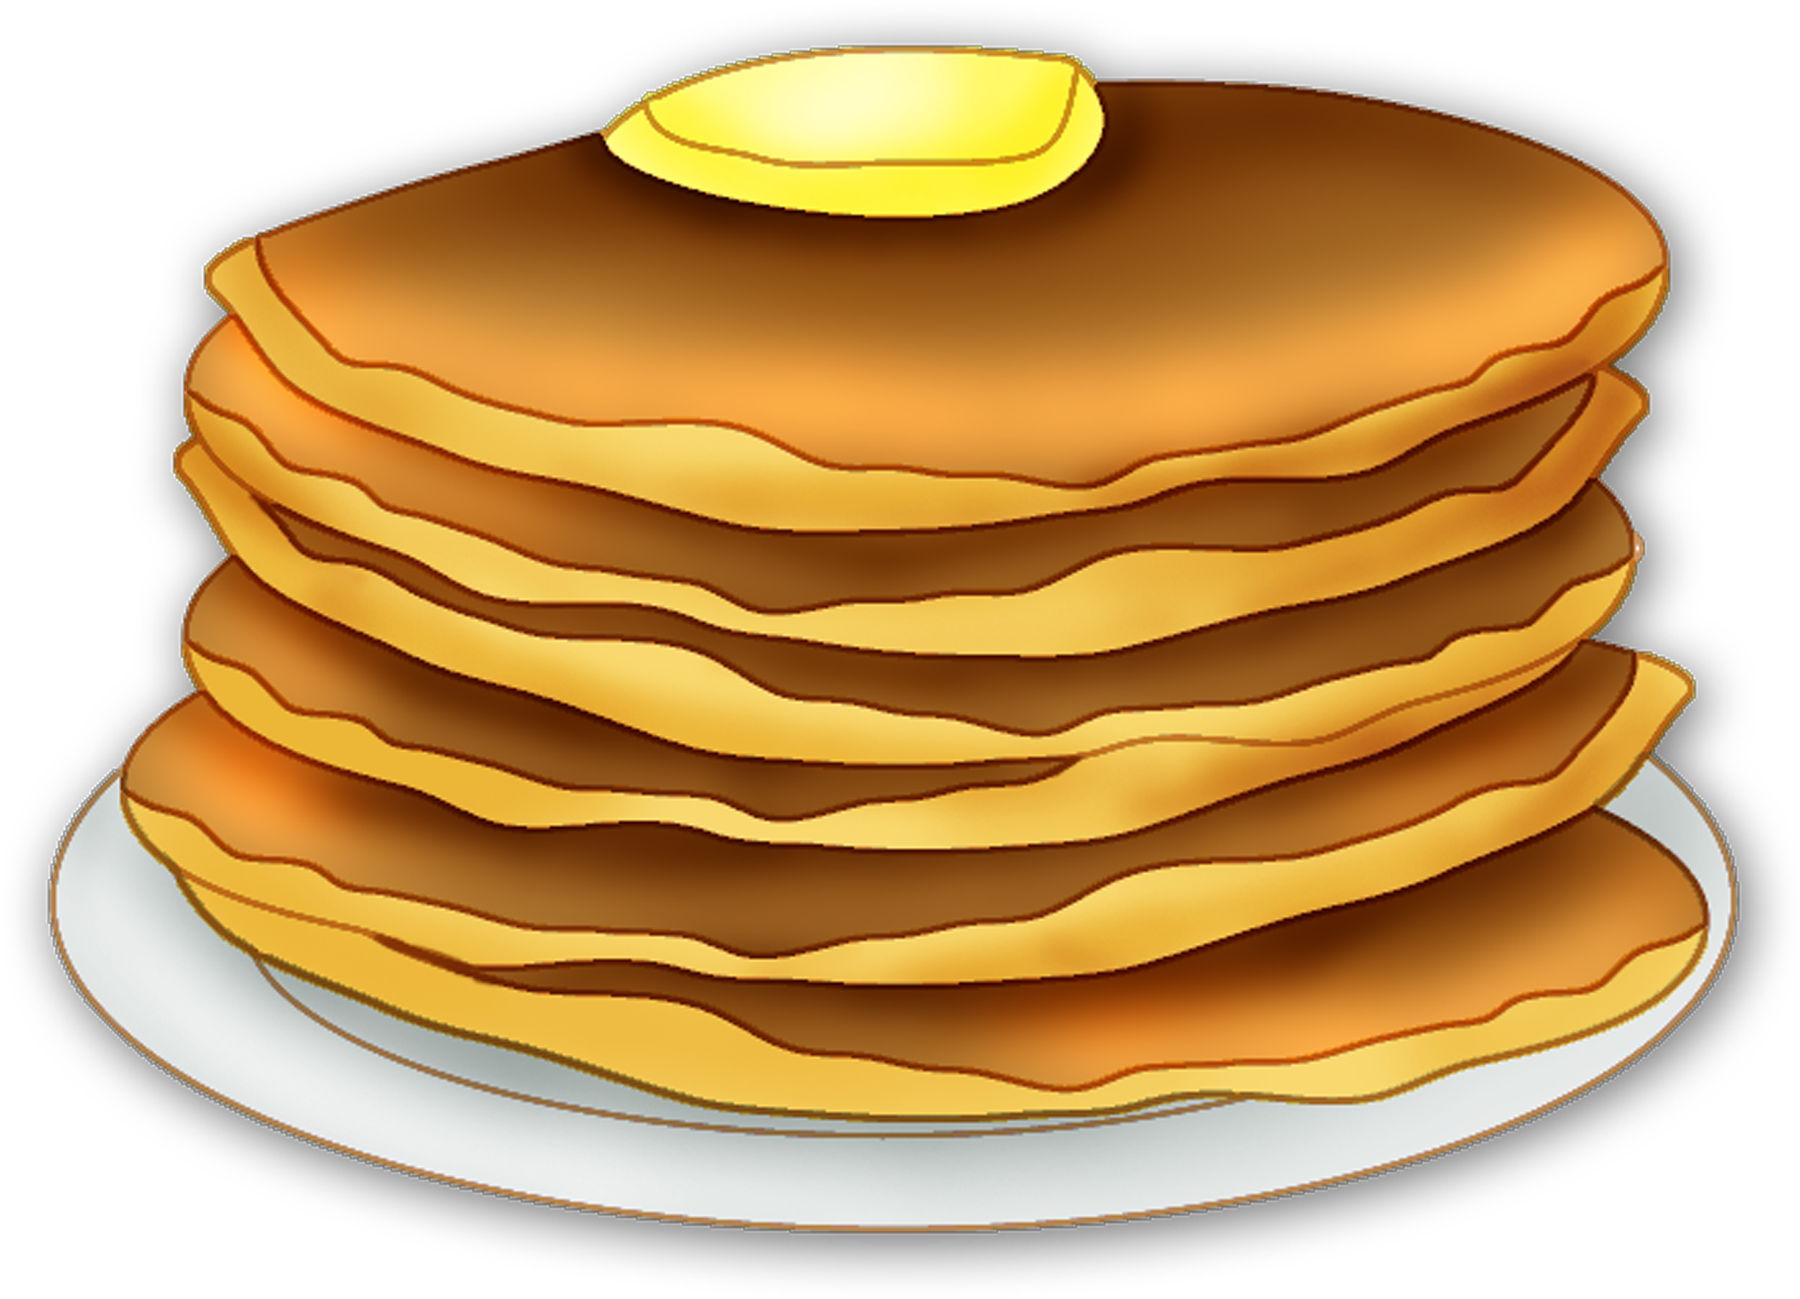 Pancake clipart stacked Com Clipart Clipart Pancake Clipartion